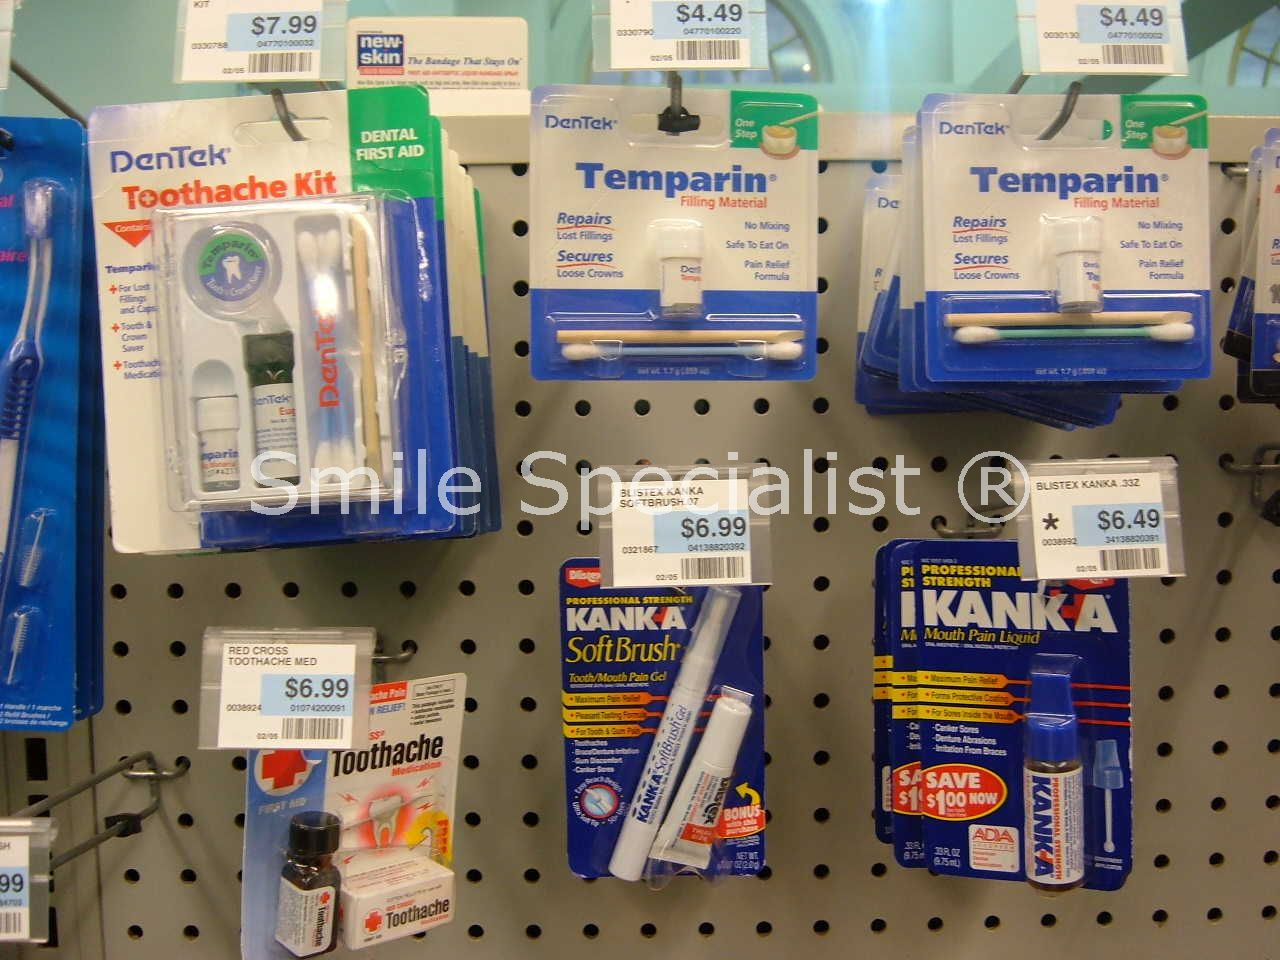 Pharmacies often stock Temporary Cements/Filling Kits